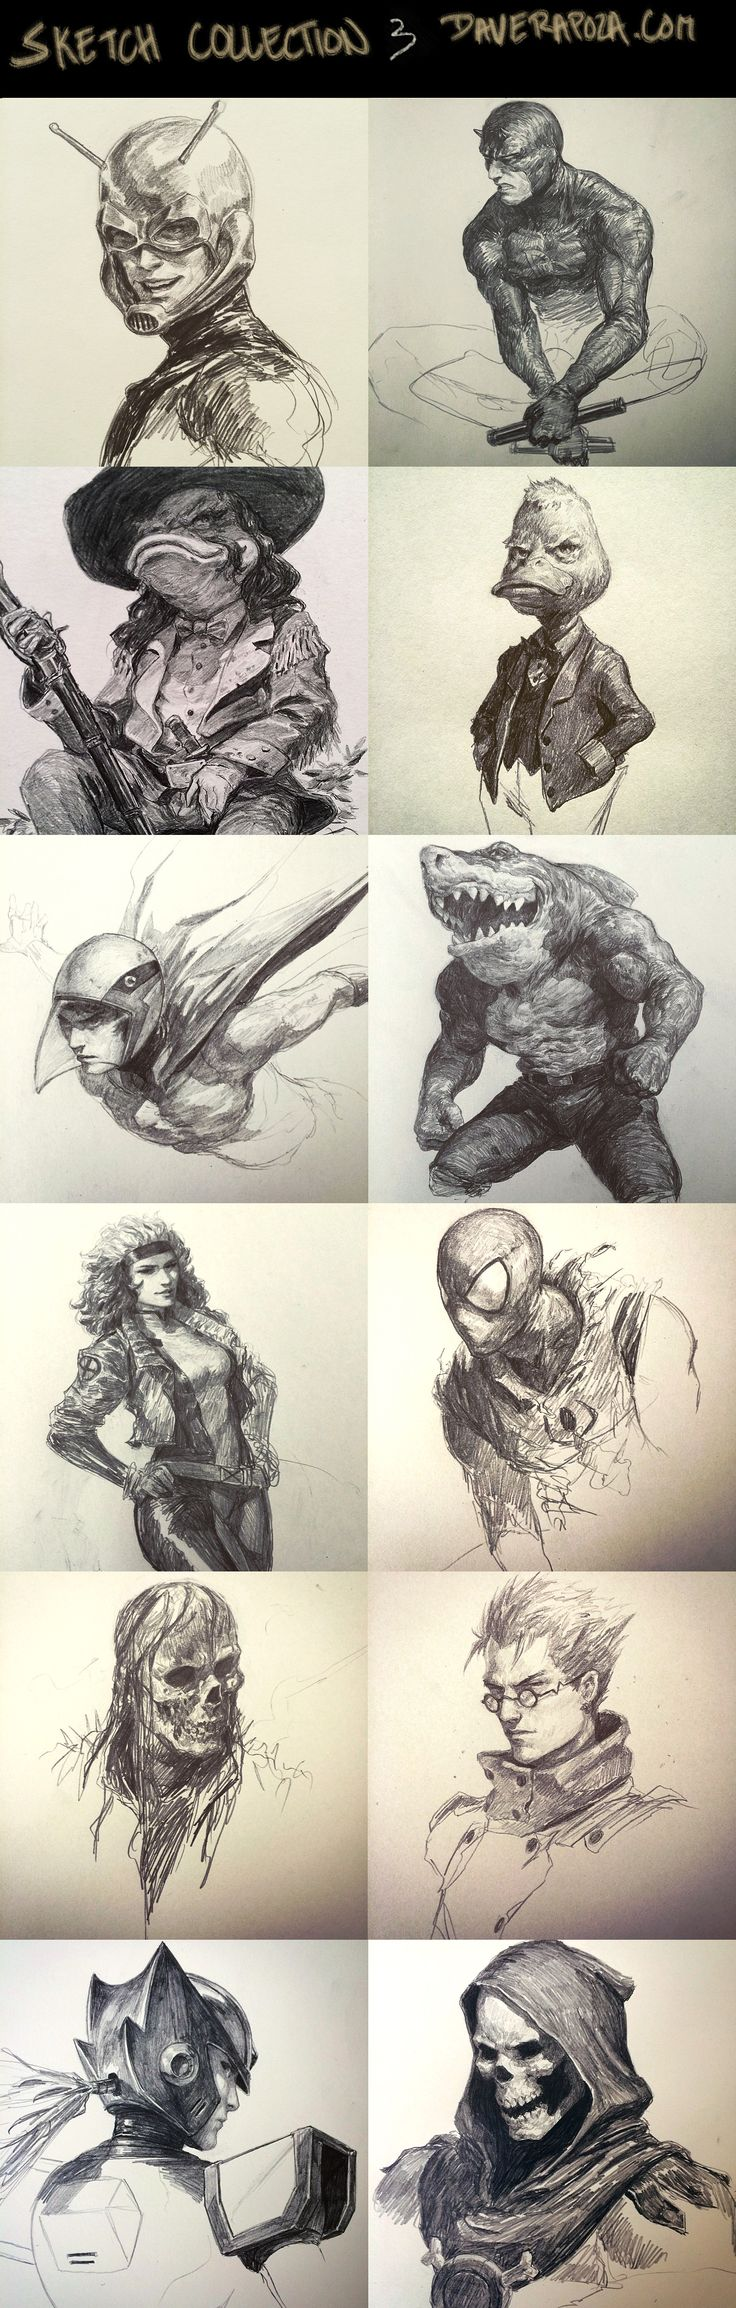 Sketch Collection part 3! by DavidRapozaArt.deviantart.com on @DeviantArt